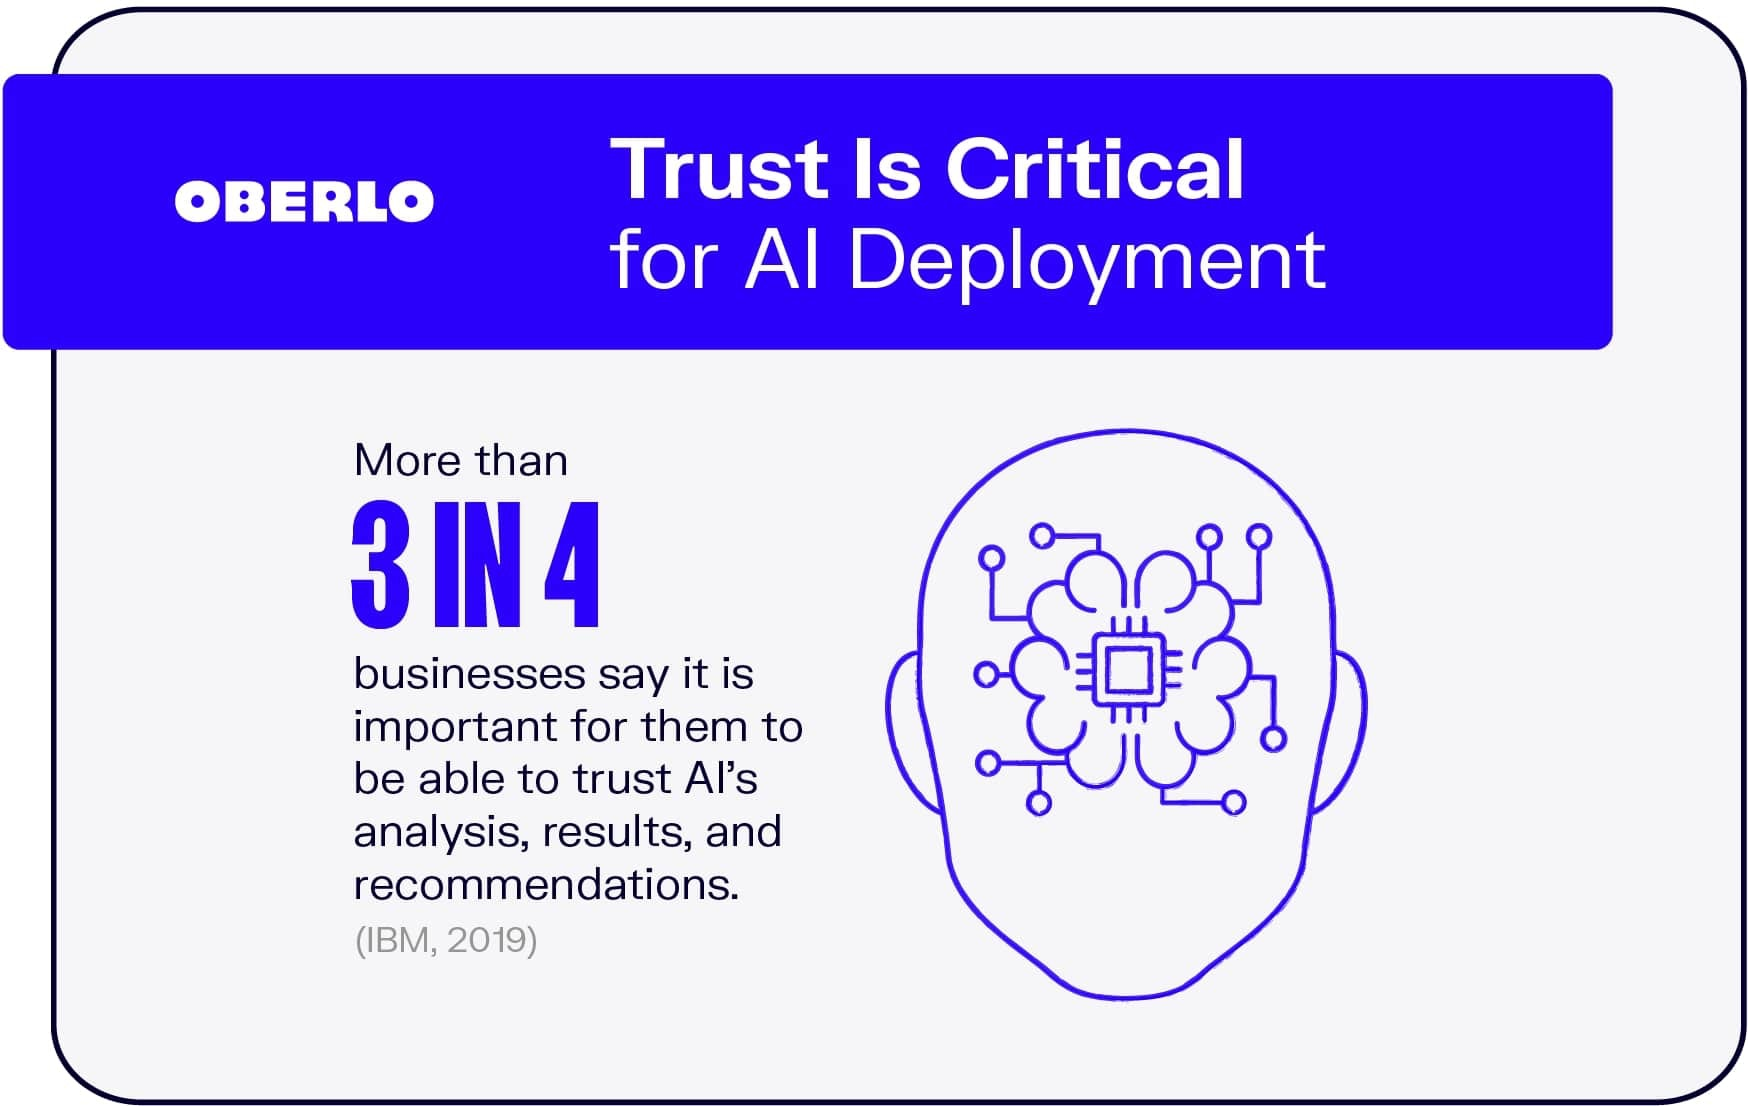 Trust Is Critical for AI Deployment